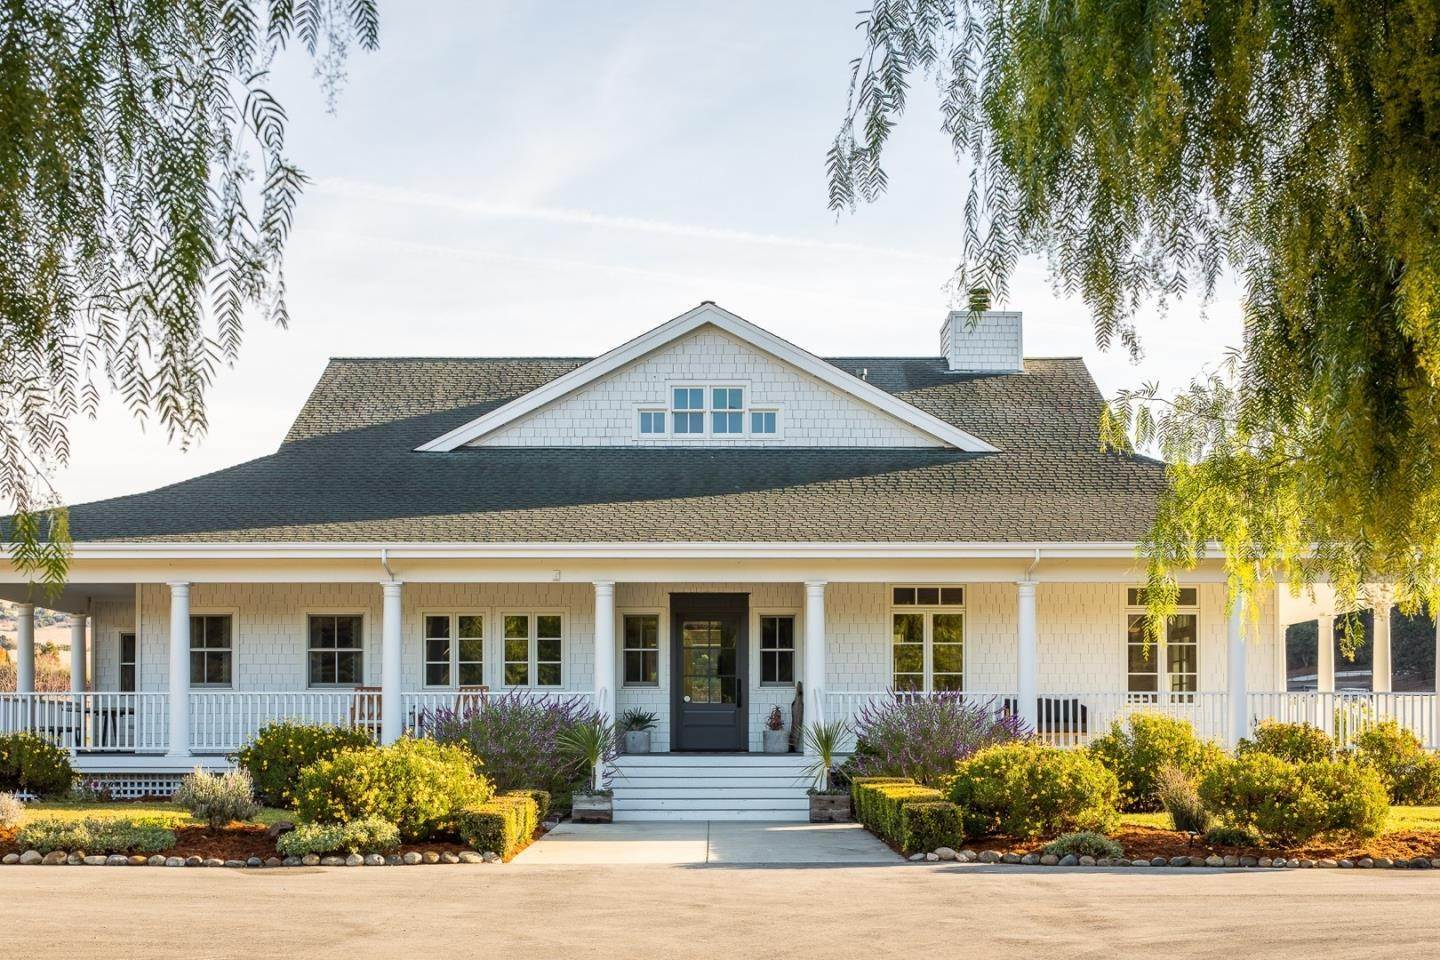 Single Family Homes for Sale at Corral De Tierra, California United States